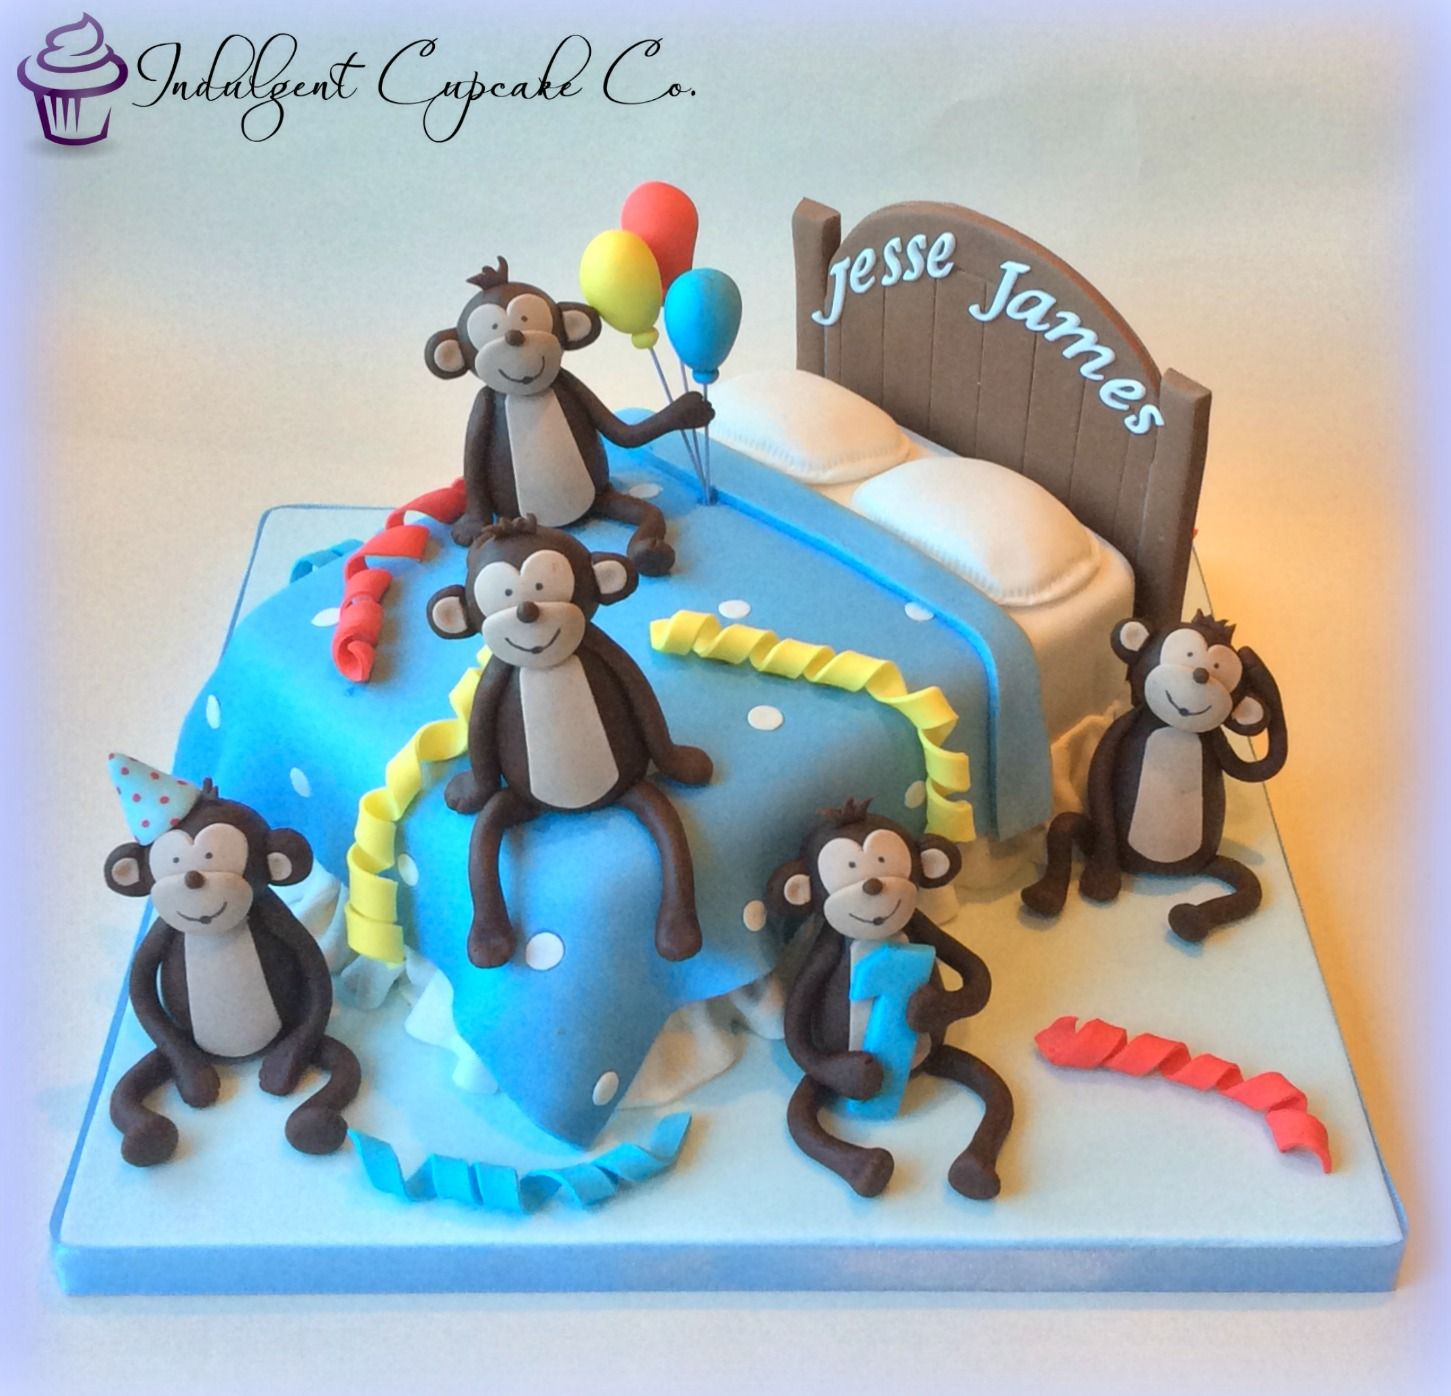 Five Little Monkeys Jumping on the Bed cake.........